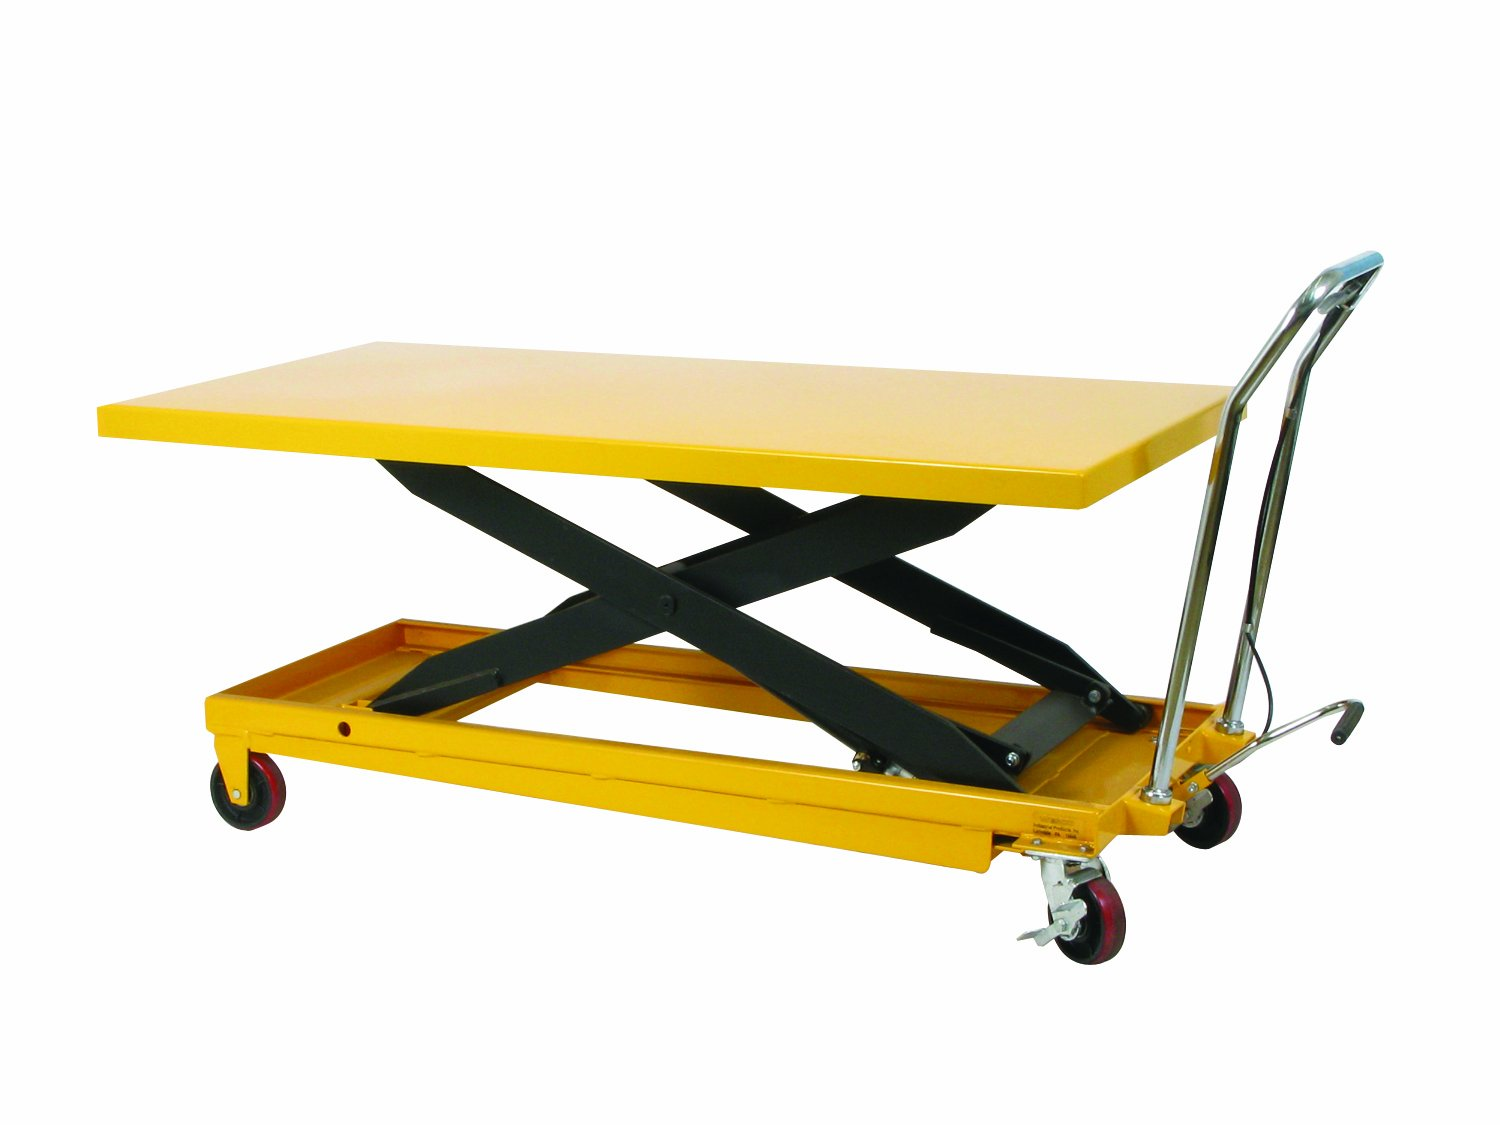 Wesco 273261 Long Scissors Lift Table with Handle, Polyurethane Wheels, 1,100 lb. Load Capacity, 63'' x 32'' Tabletop, 36 Height